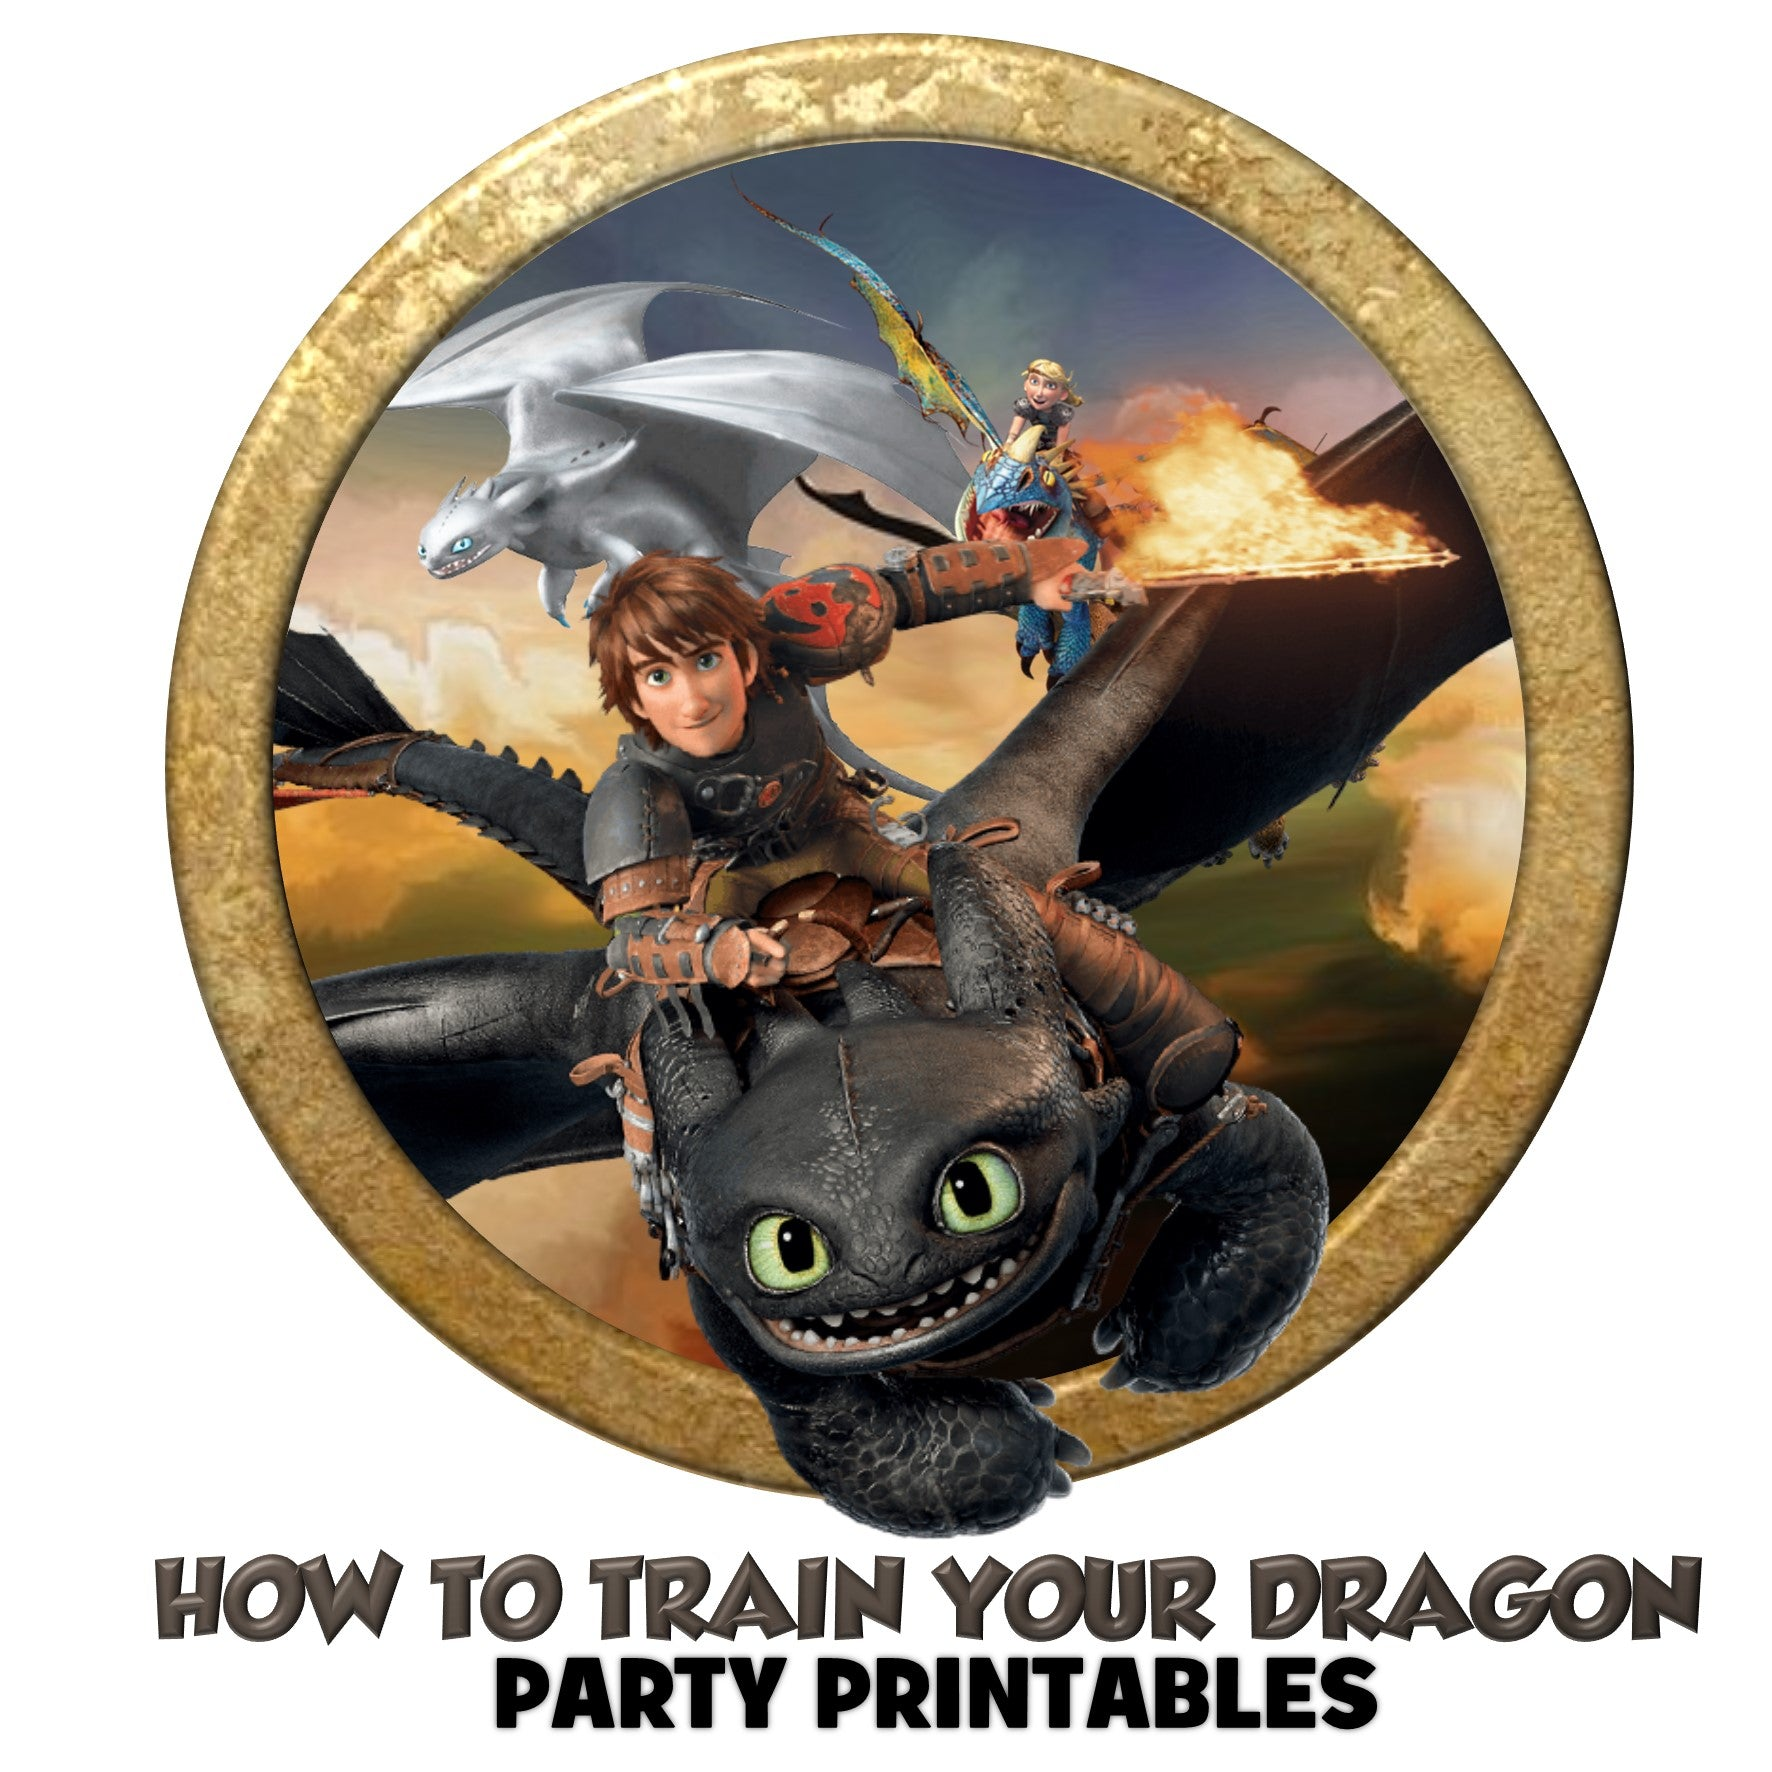 HOW TO TRAIN YOUR DRAGON INSPIRATION